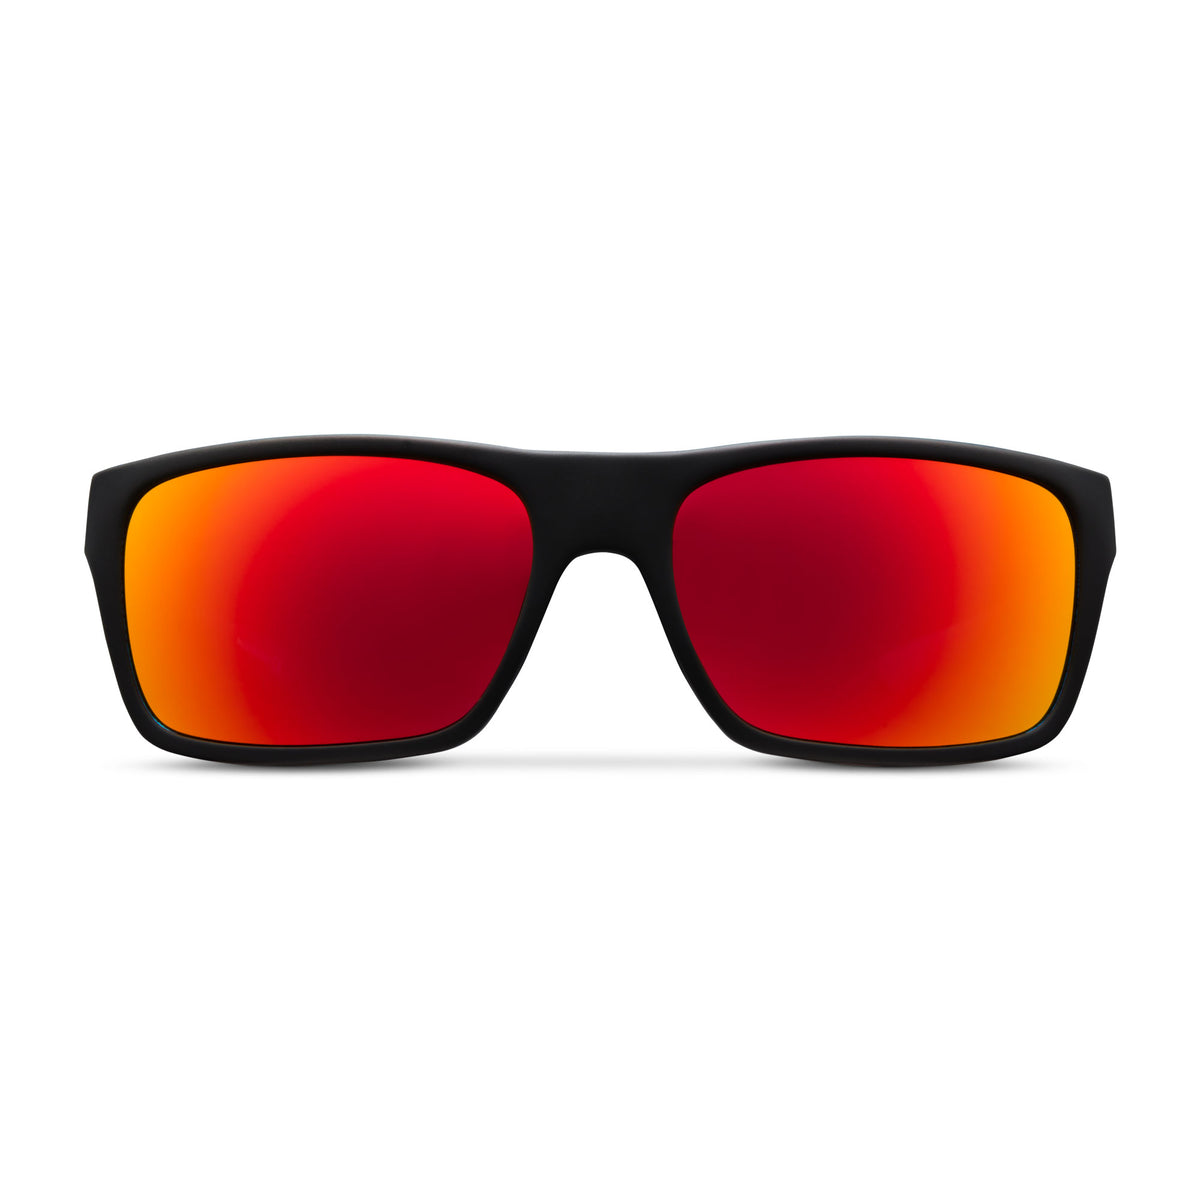 Fish Taco - Polarized XP-700™ Polycarbonate Lens Big Image - 2